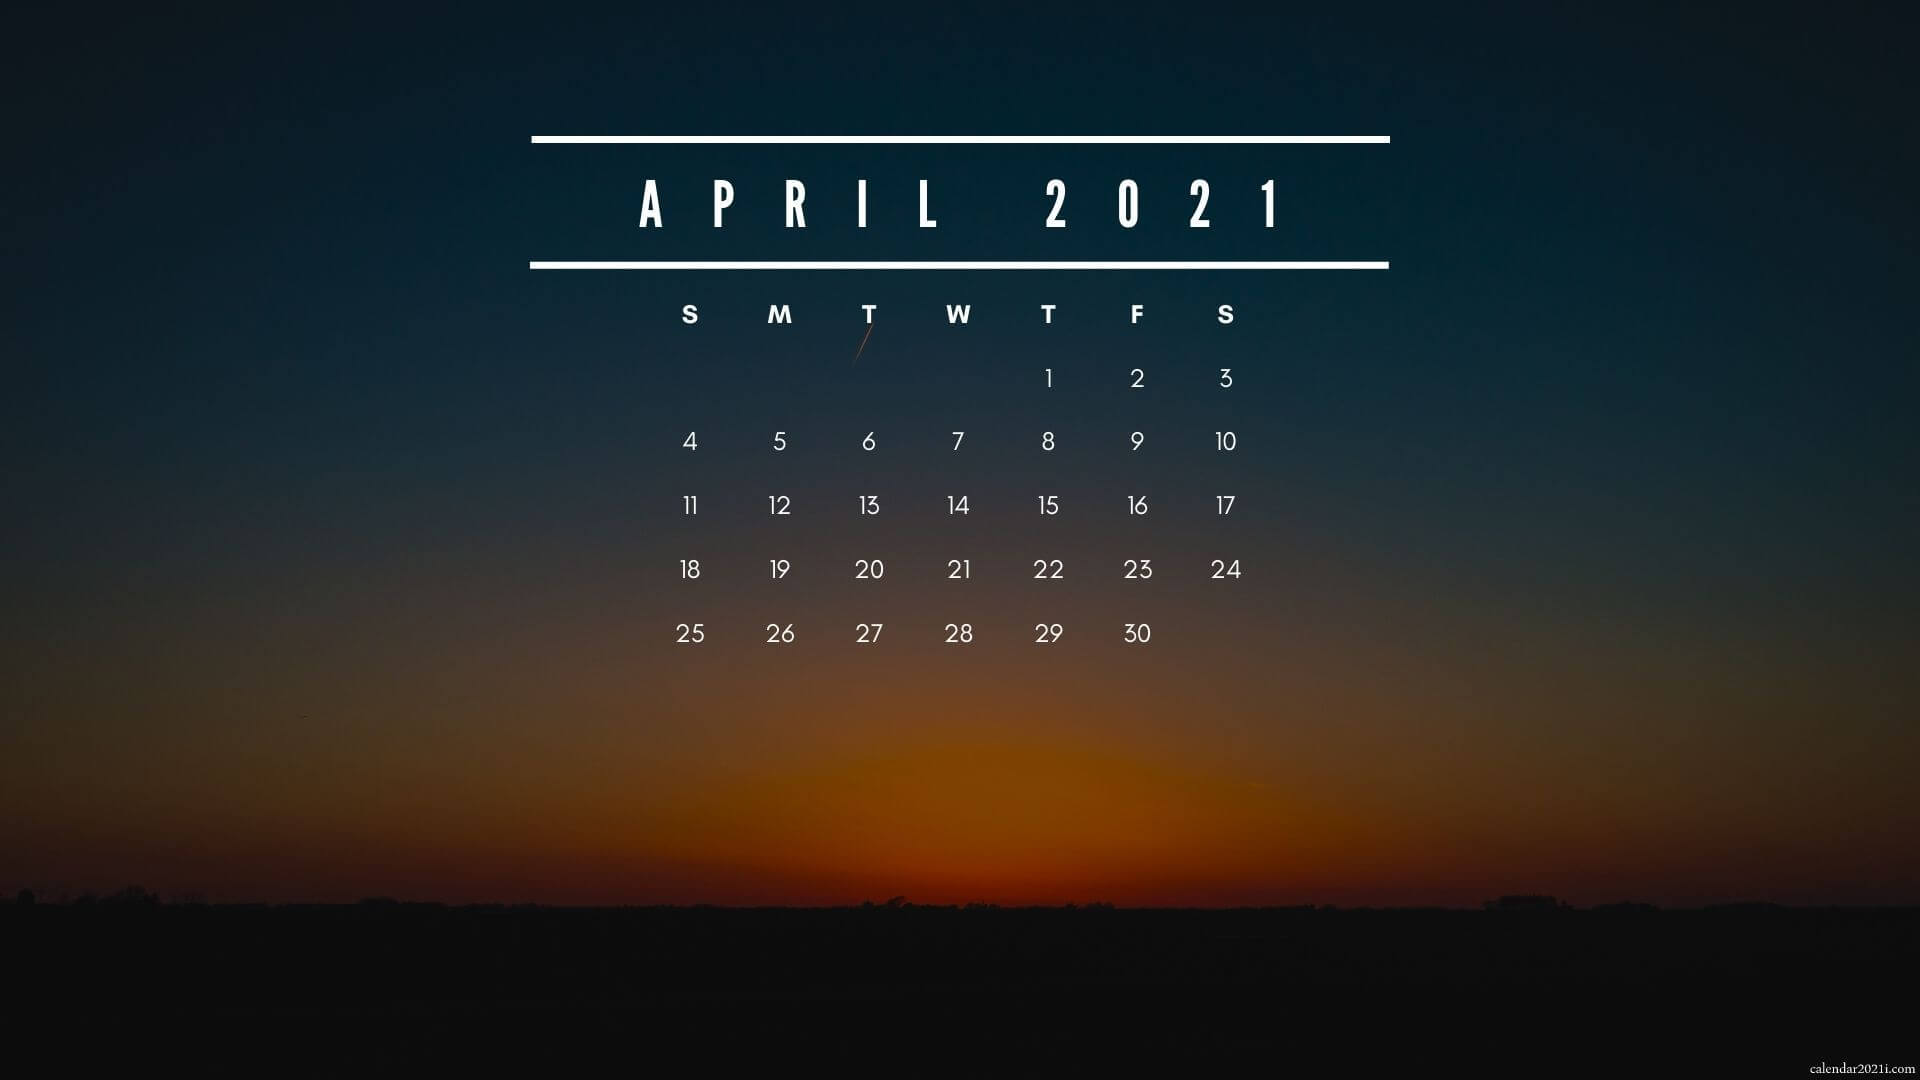 April 2021 Screensaver Background Calendar